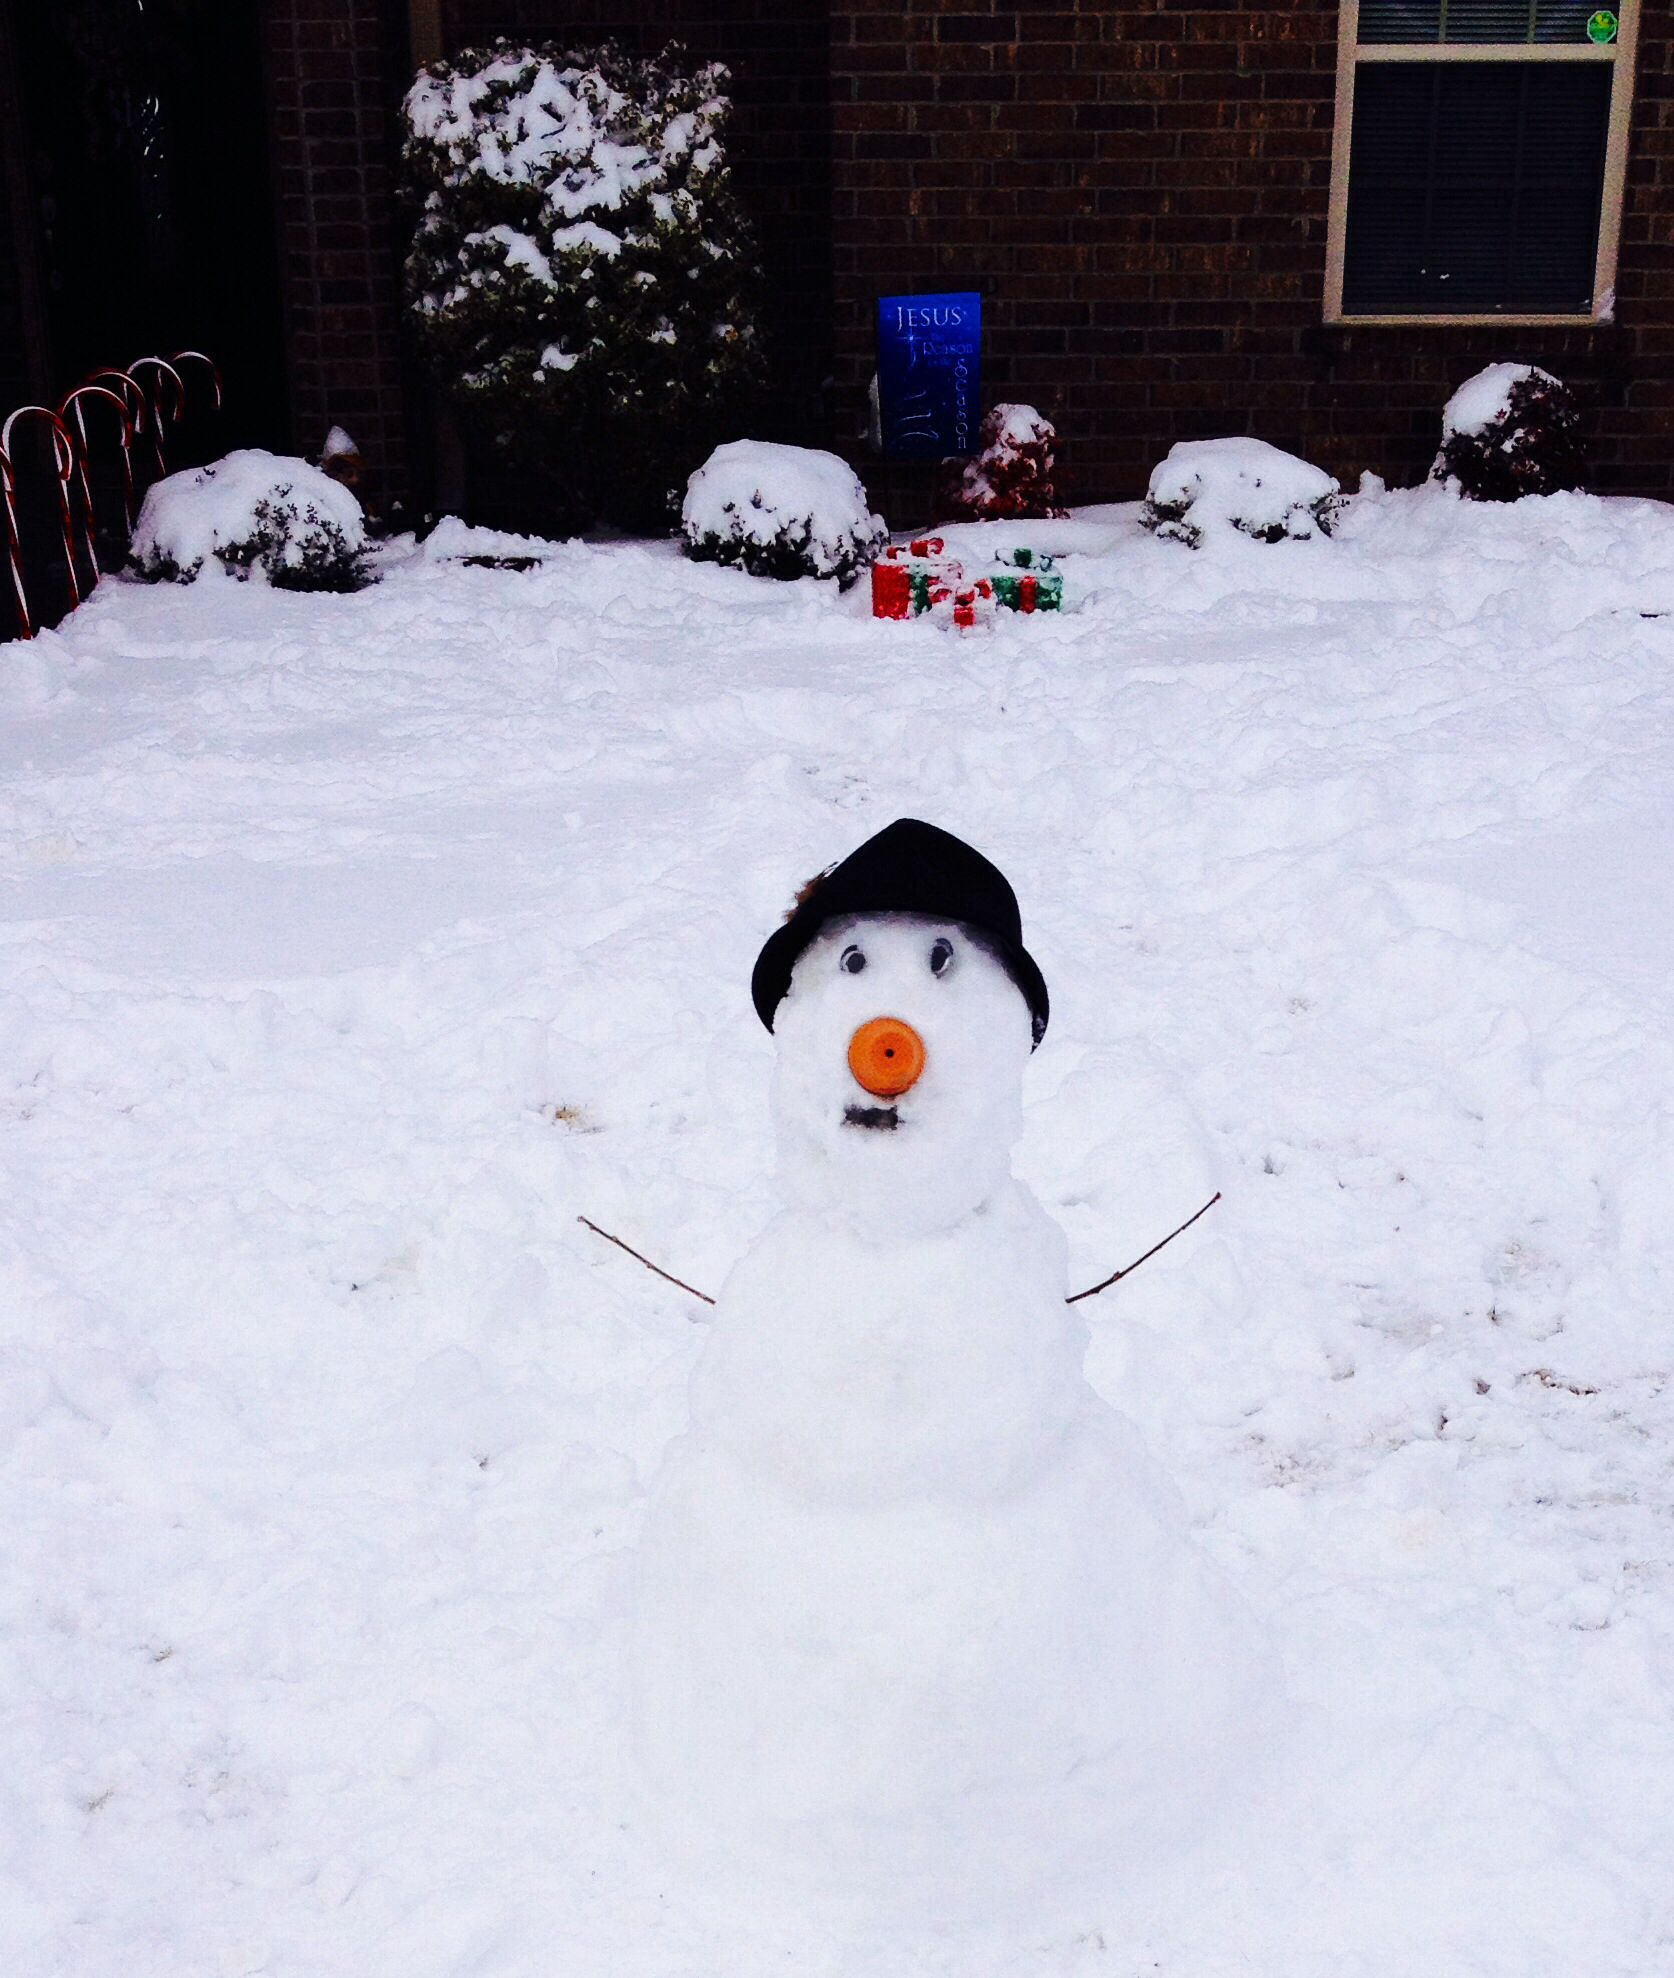 ⛄️ This is my snowman using two sticks for the arms (typical), an orange pot for the nose, two magnets for the eyes, an old hat we don't want anymore, and a spray painted mouth. LOL The snow was really hard 2 pack in together but it was possible. ⛄️